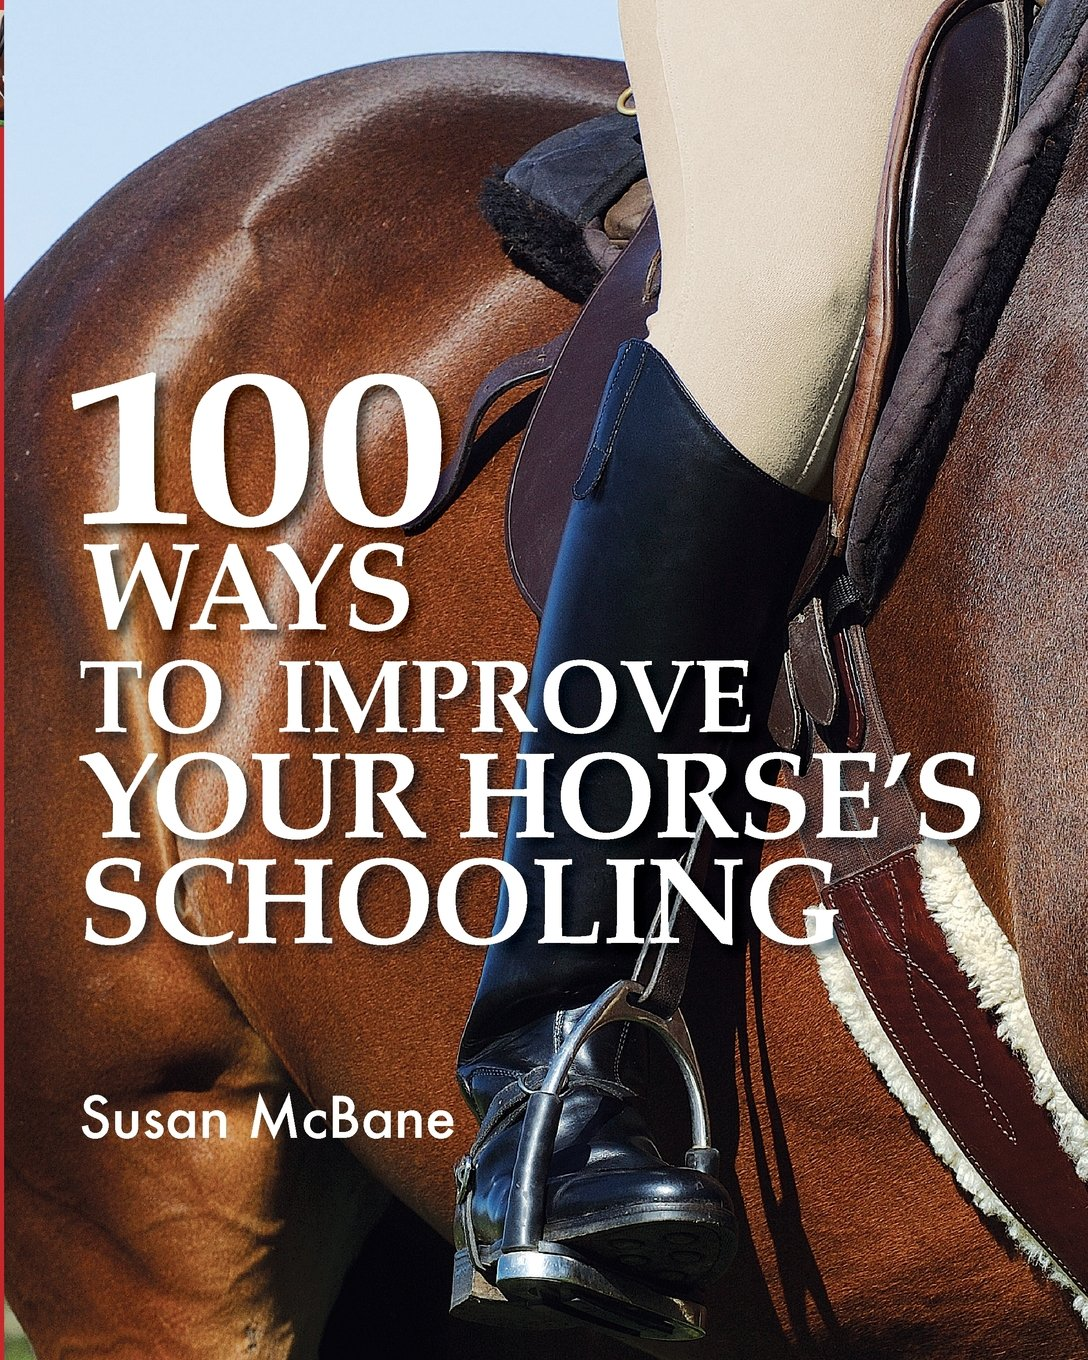 100 Ways to Improve Your Horses Schooling: Susan Mcbane: 9780715328866:  Amazon.com: Books